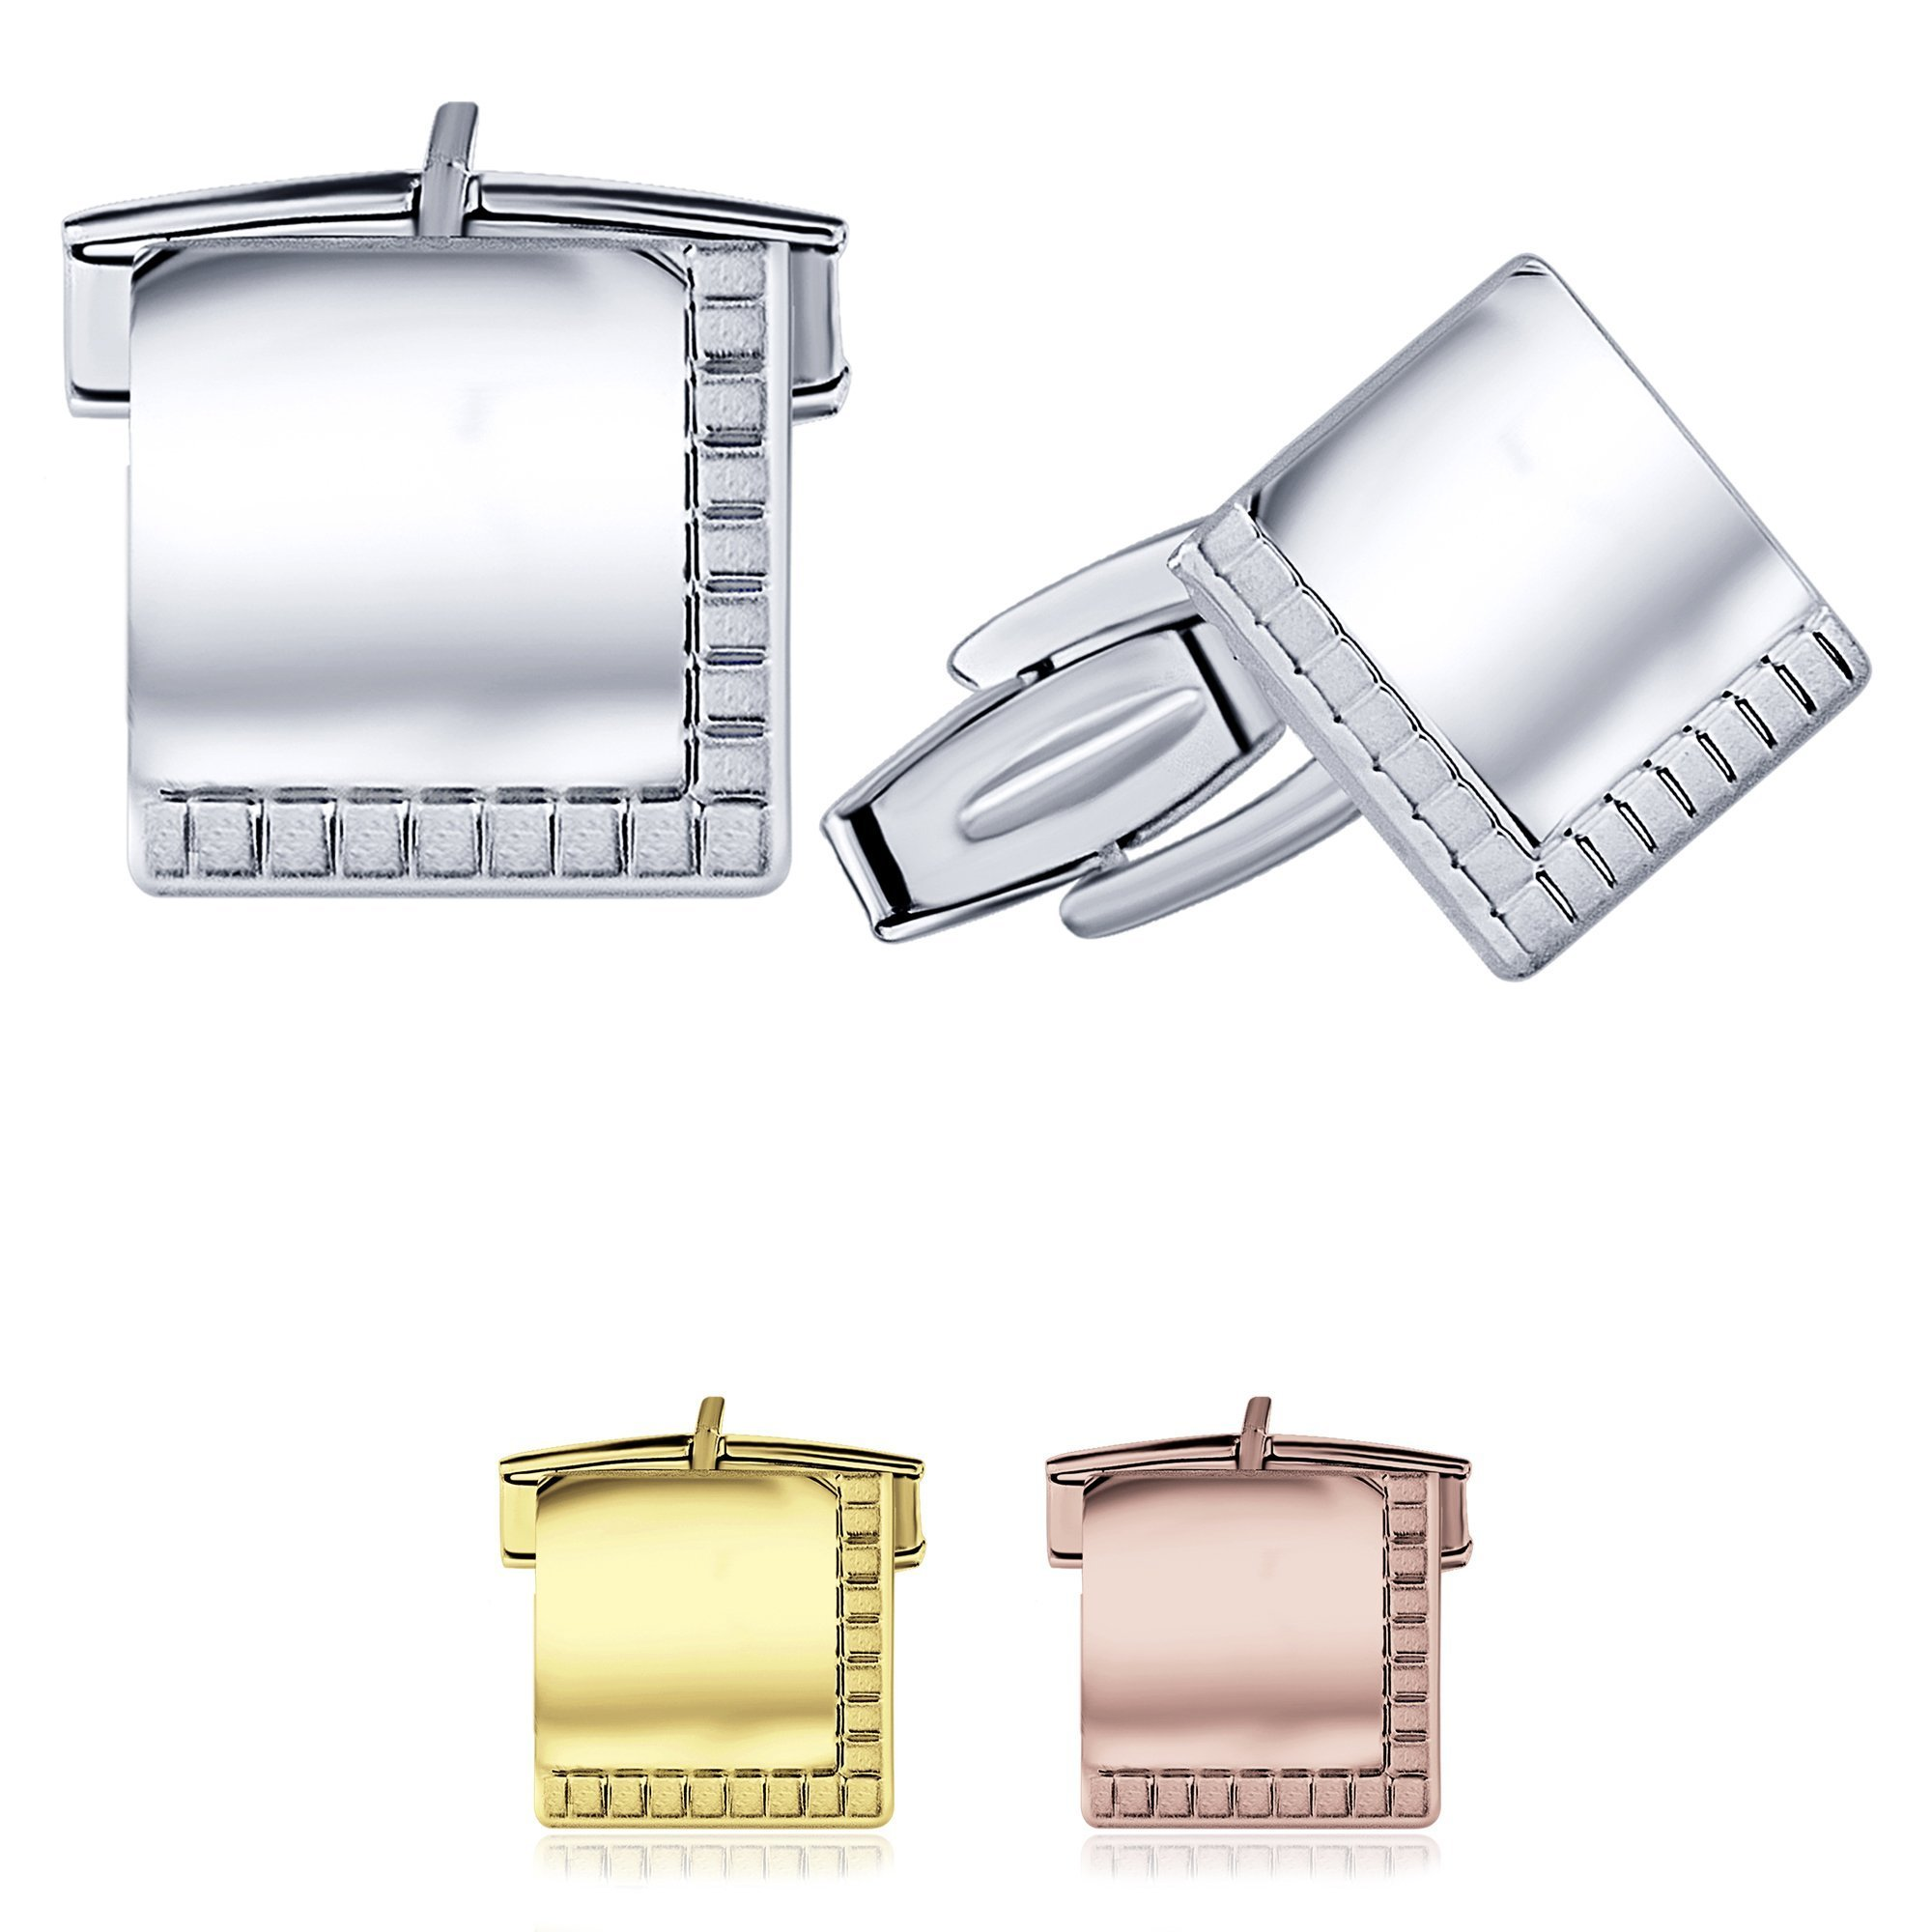 Sterling Manufacturers Elegant Square Cufflinks for Men, 925 Sterling Silver Jewelry with Satin Finish Accent, 14mm, Engravable, Made in Italy